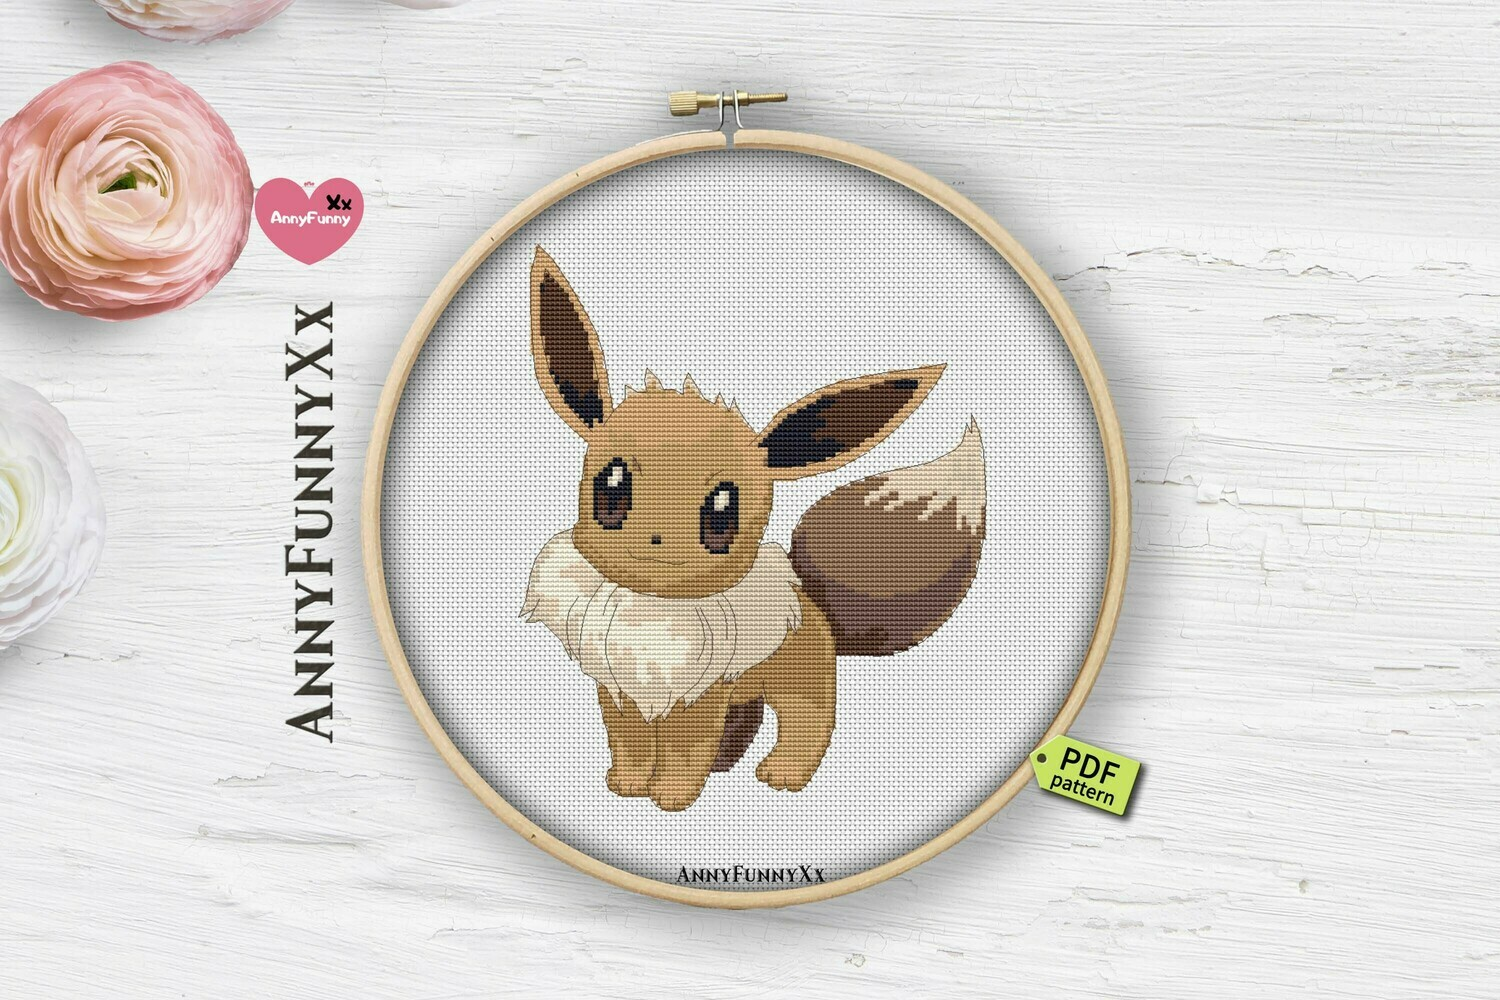 Eevee pokemon cross stitch pattern PDF, Pokemon Go, eeveelutions